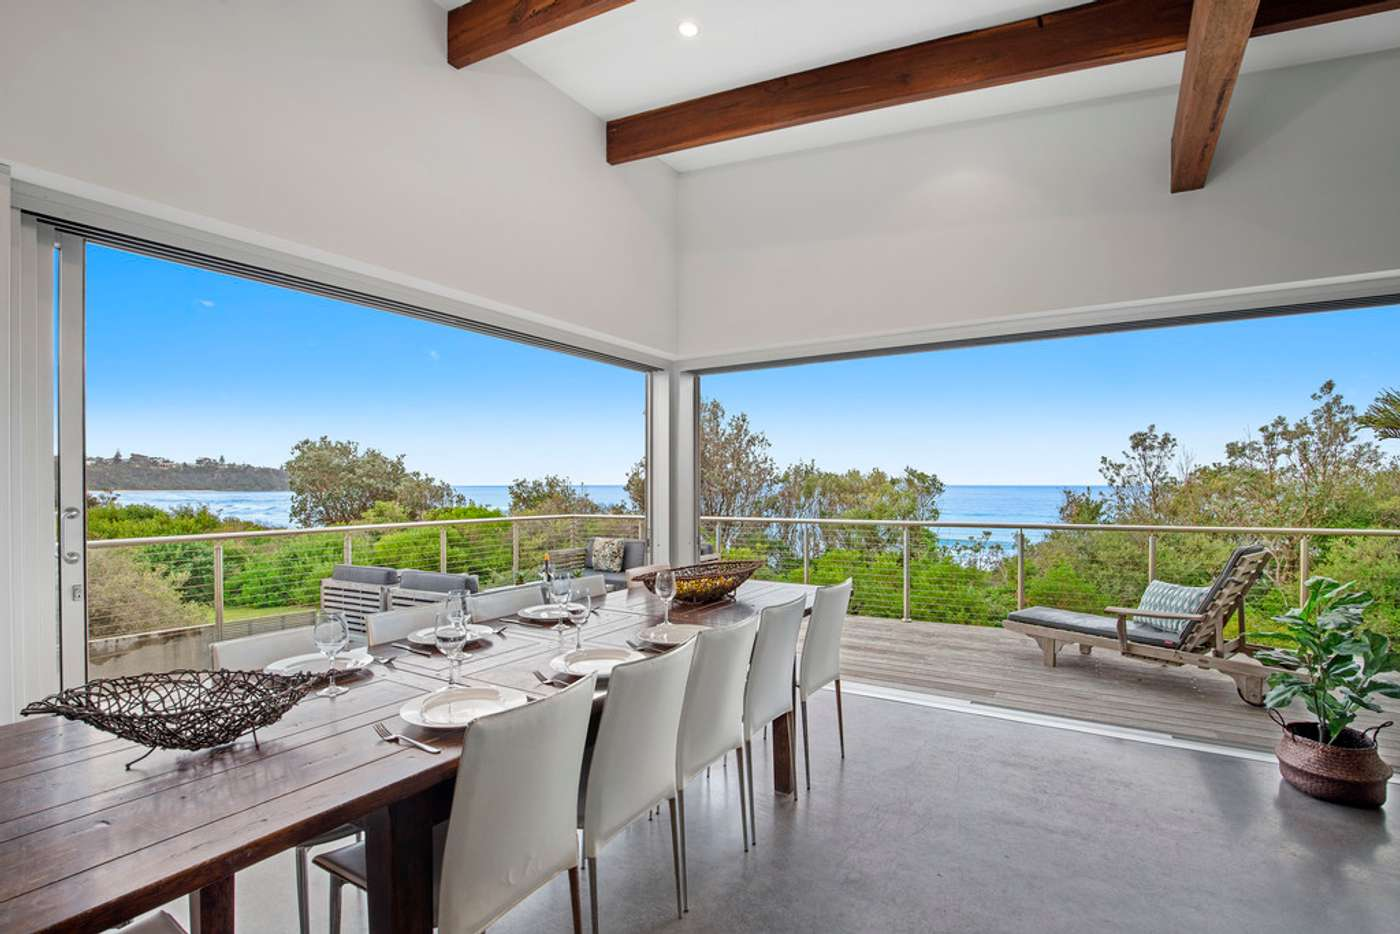 Main view of Homely house listing, 28 Mitchell Parade, Mollymook NSW 2539